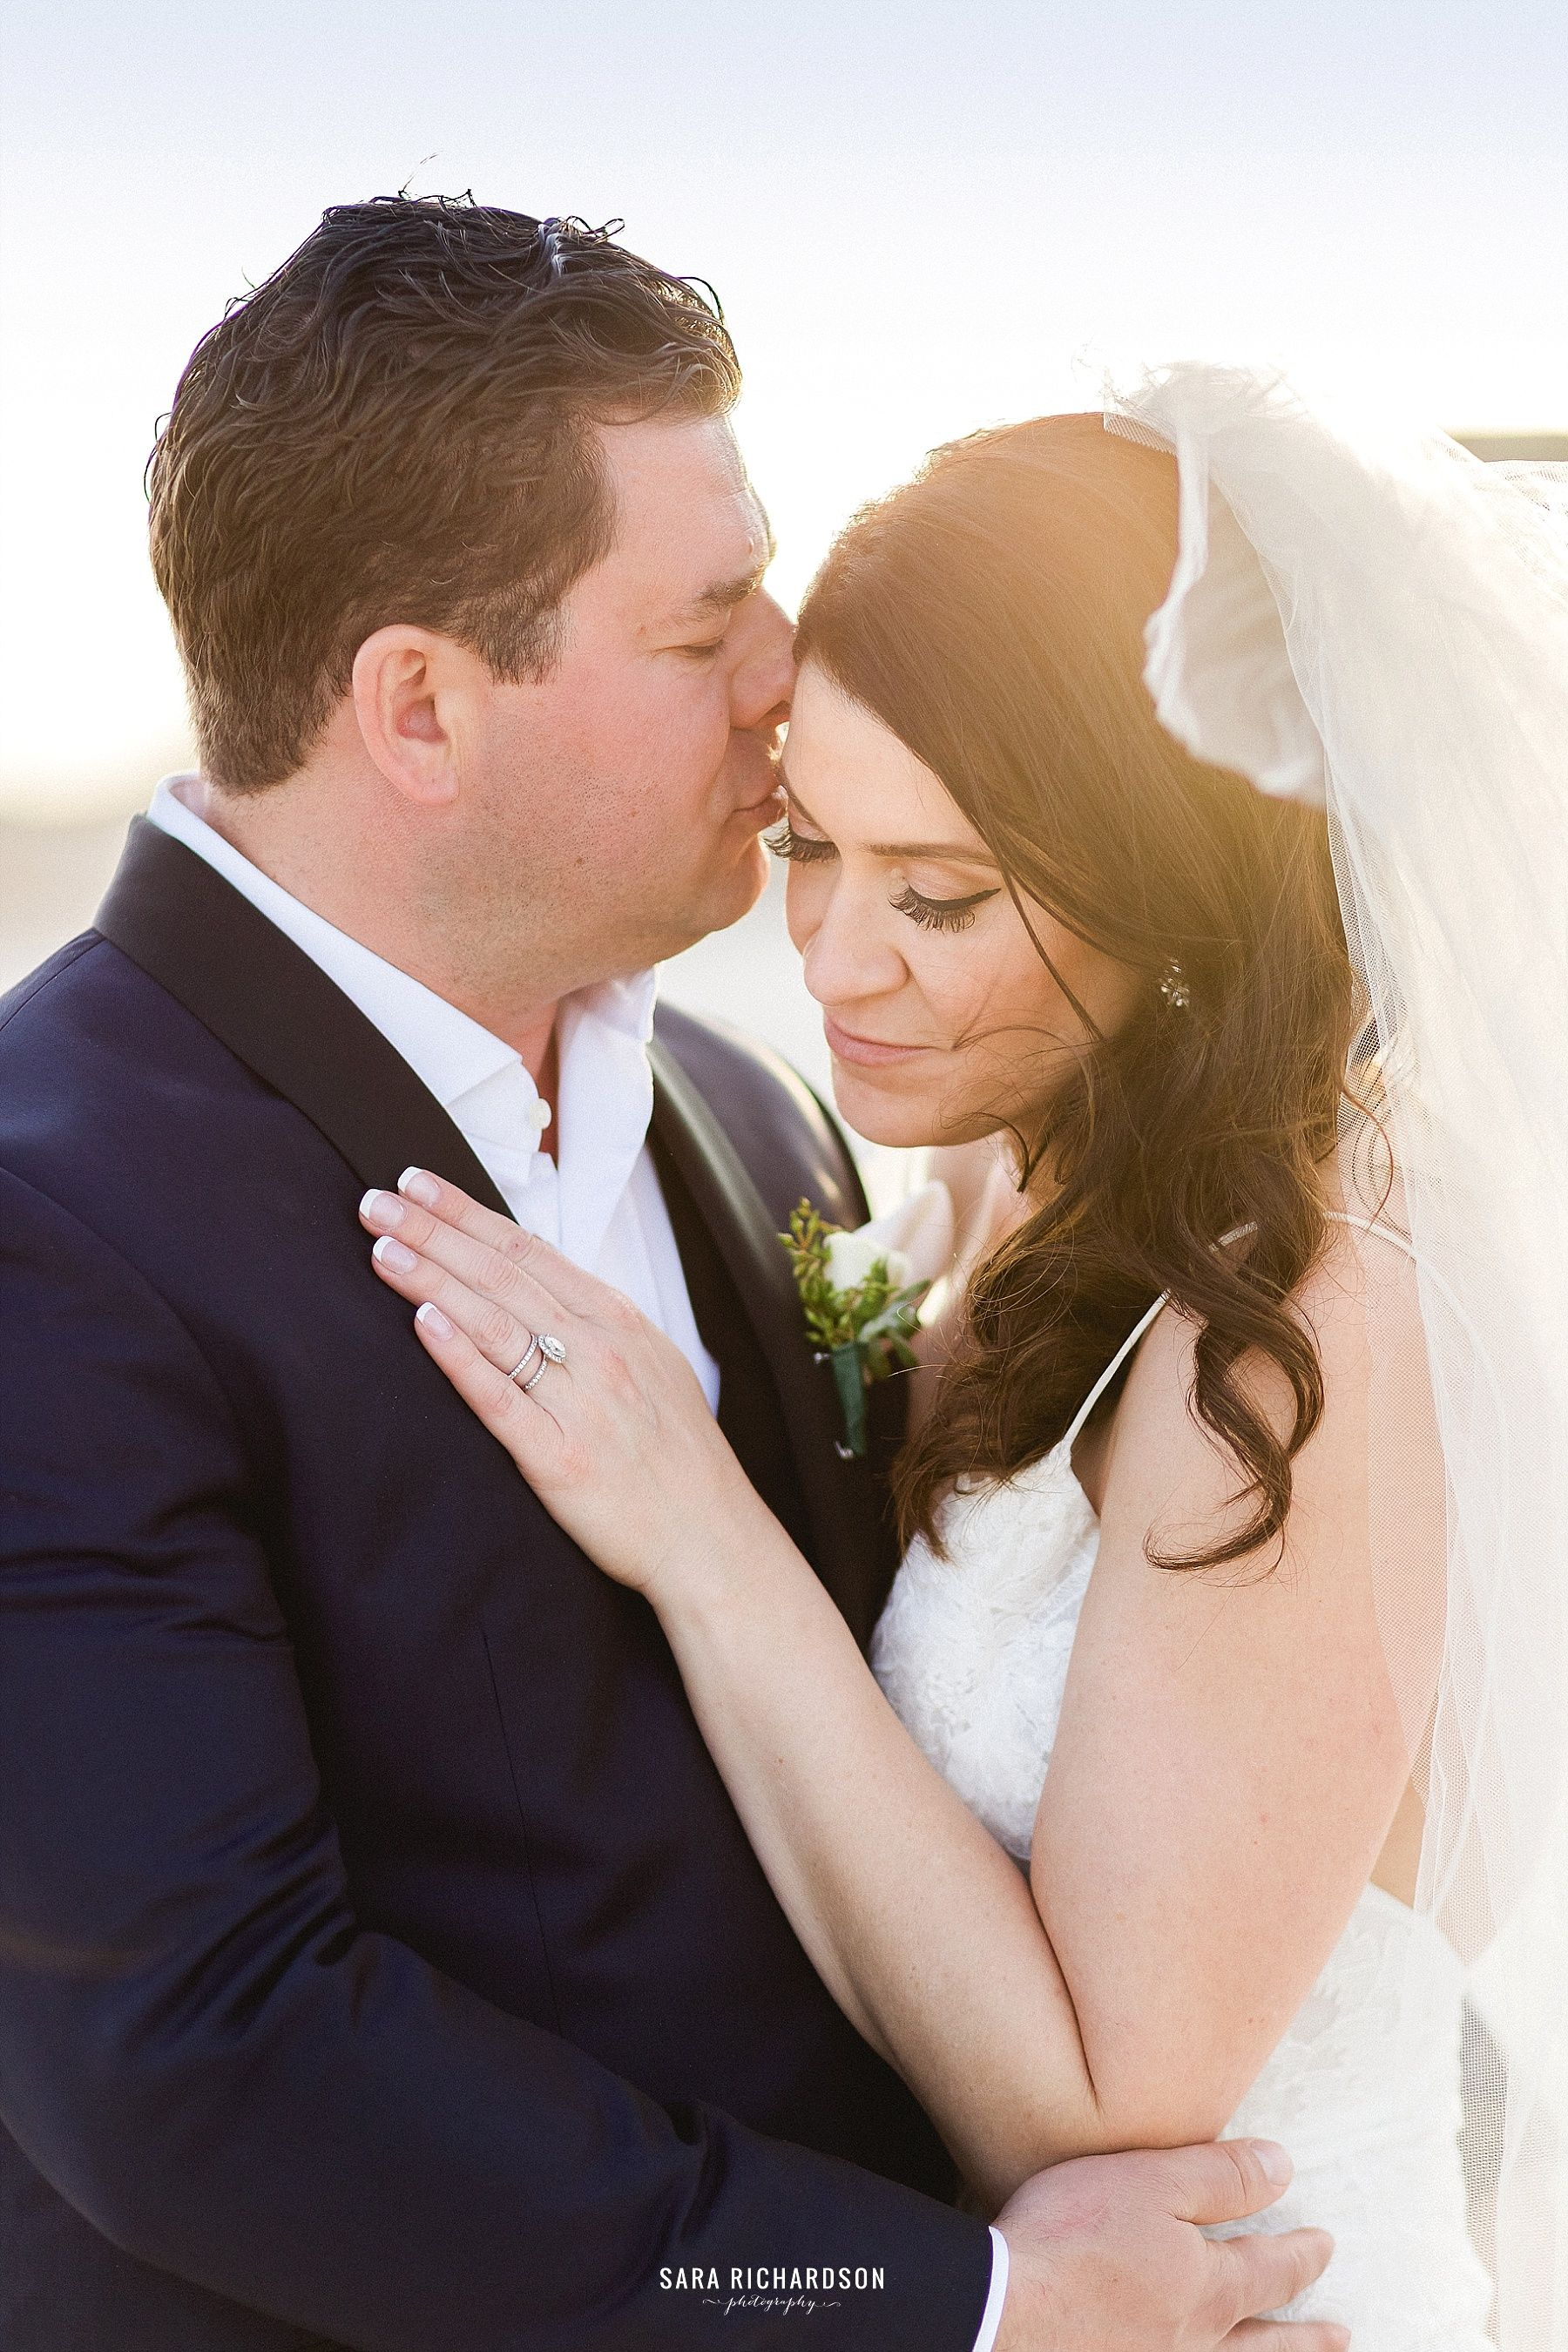 Bride and Groom having their Photo Session on their Wedding Day. Destination Wedding Venue was LeBlanc in Los cabos Mexico